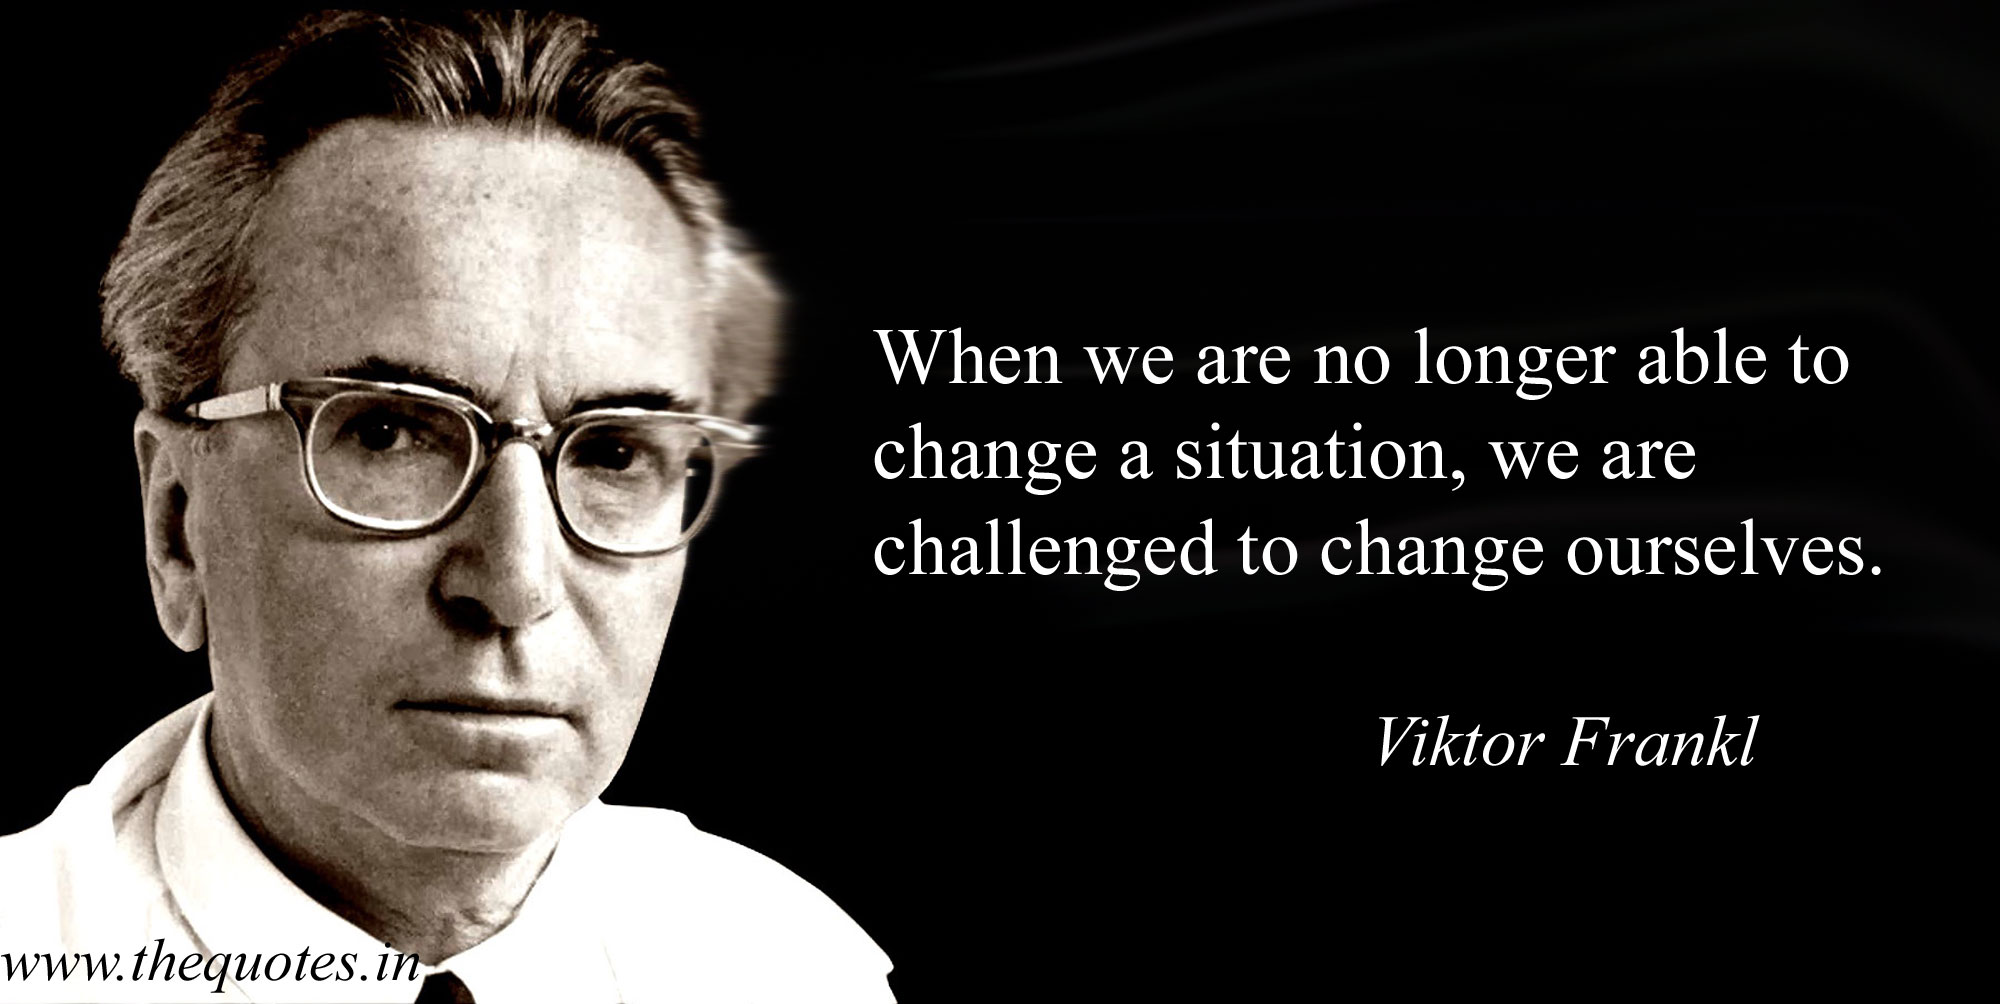 When we are no long able to change a situation, we are challenged to change ourselves.  – Viktor Frankl